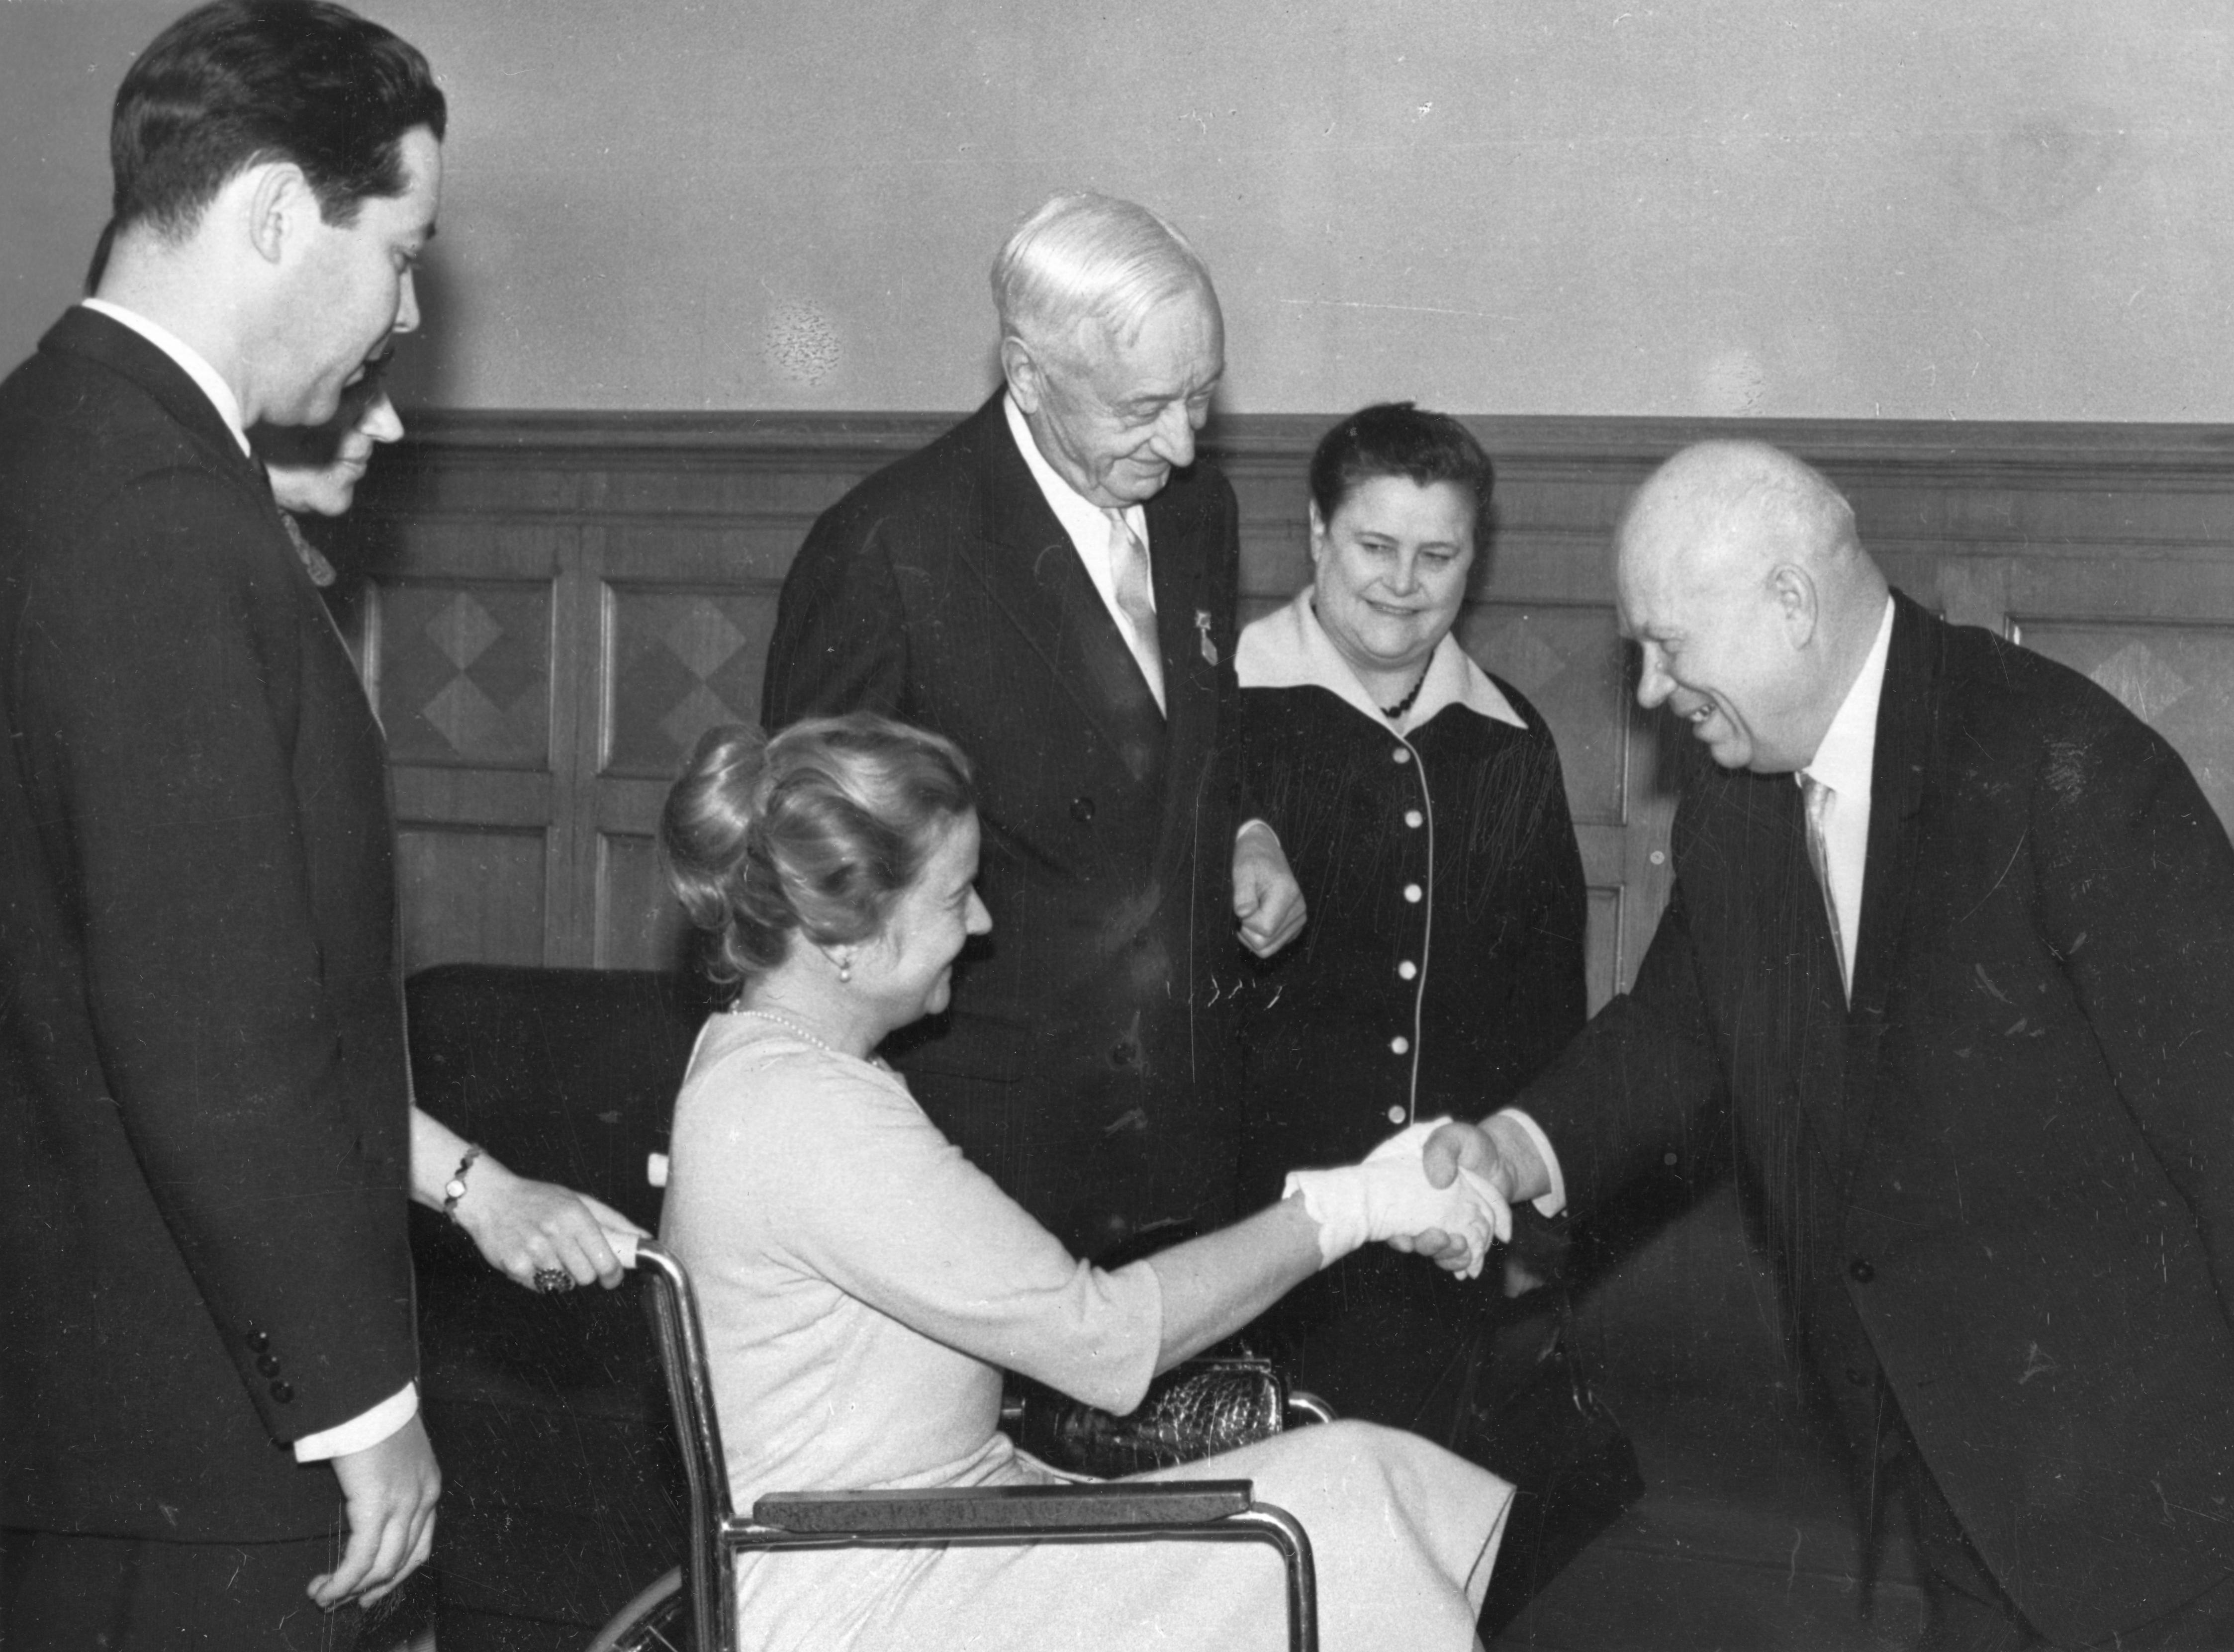 Cyrus Eaton (standing) and his wife Anne (seated in a wheelchair) meet with Nikita Khrushchev in Moscow, 1964.